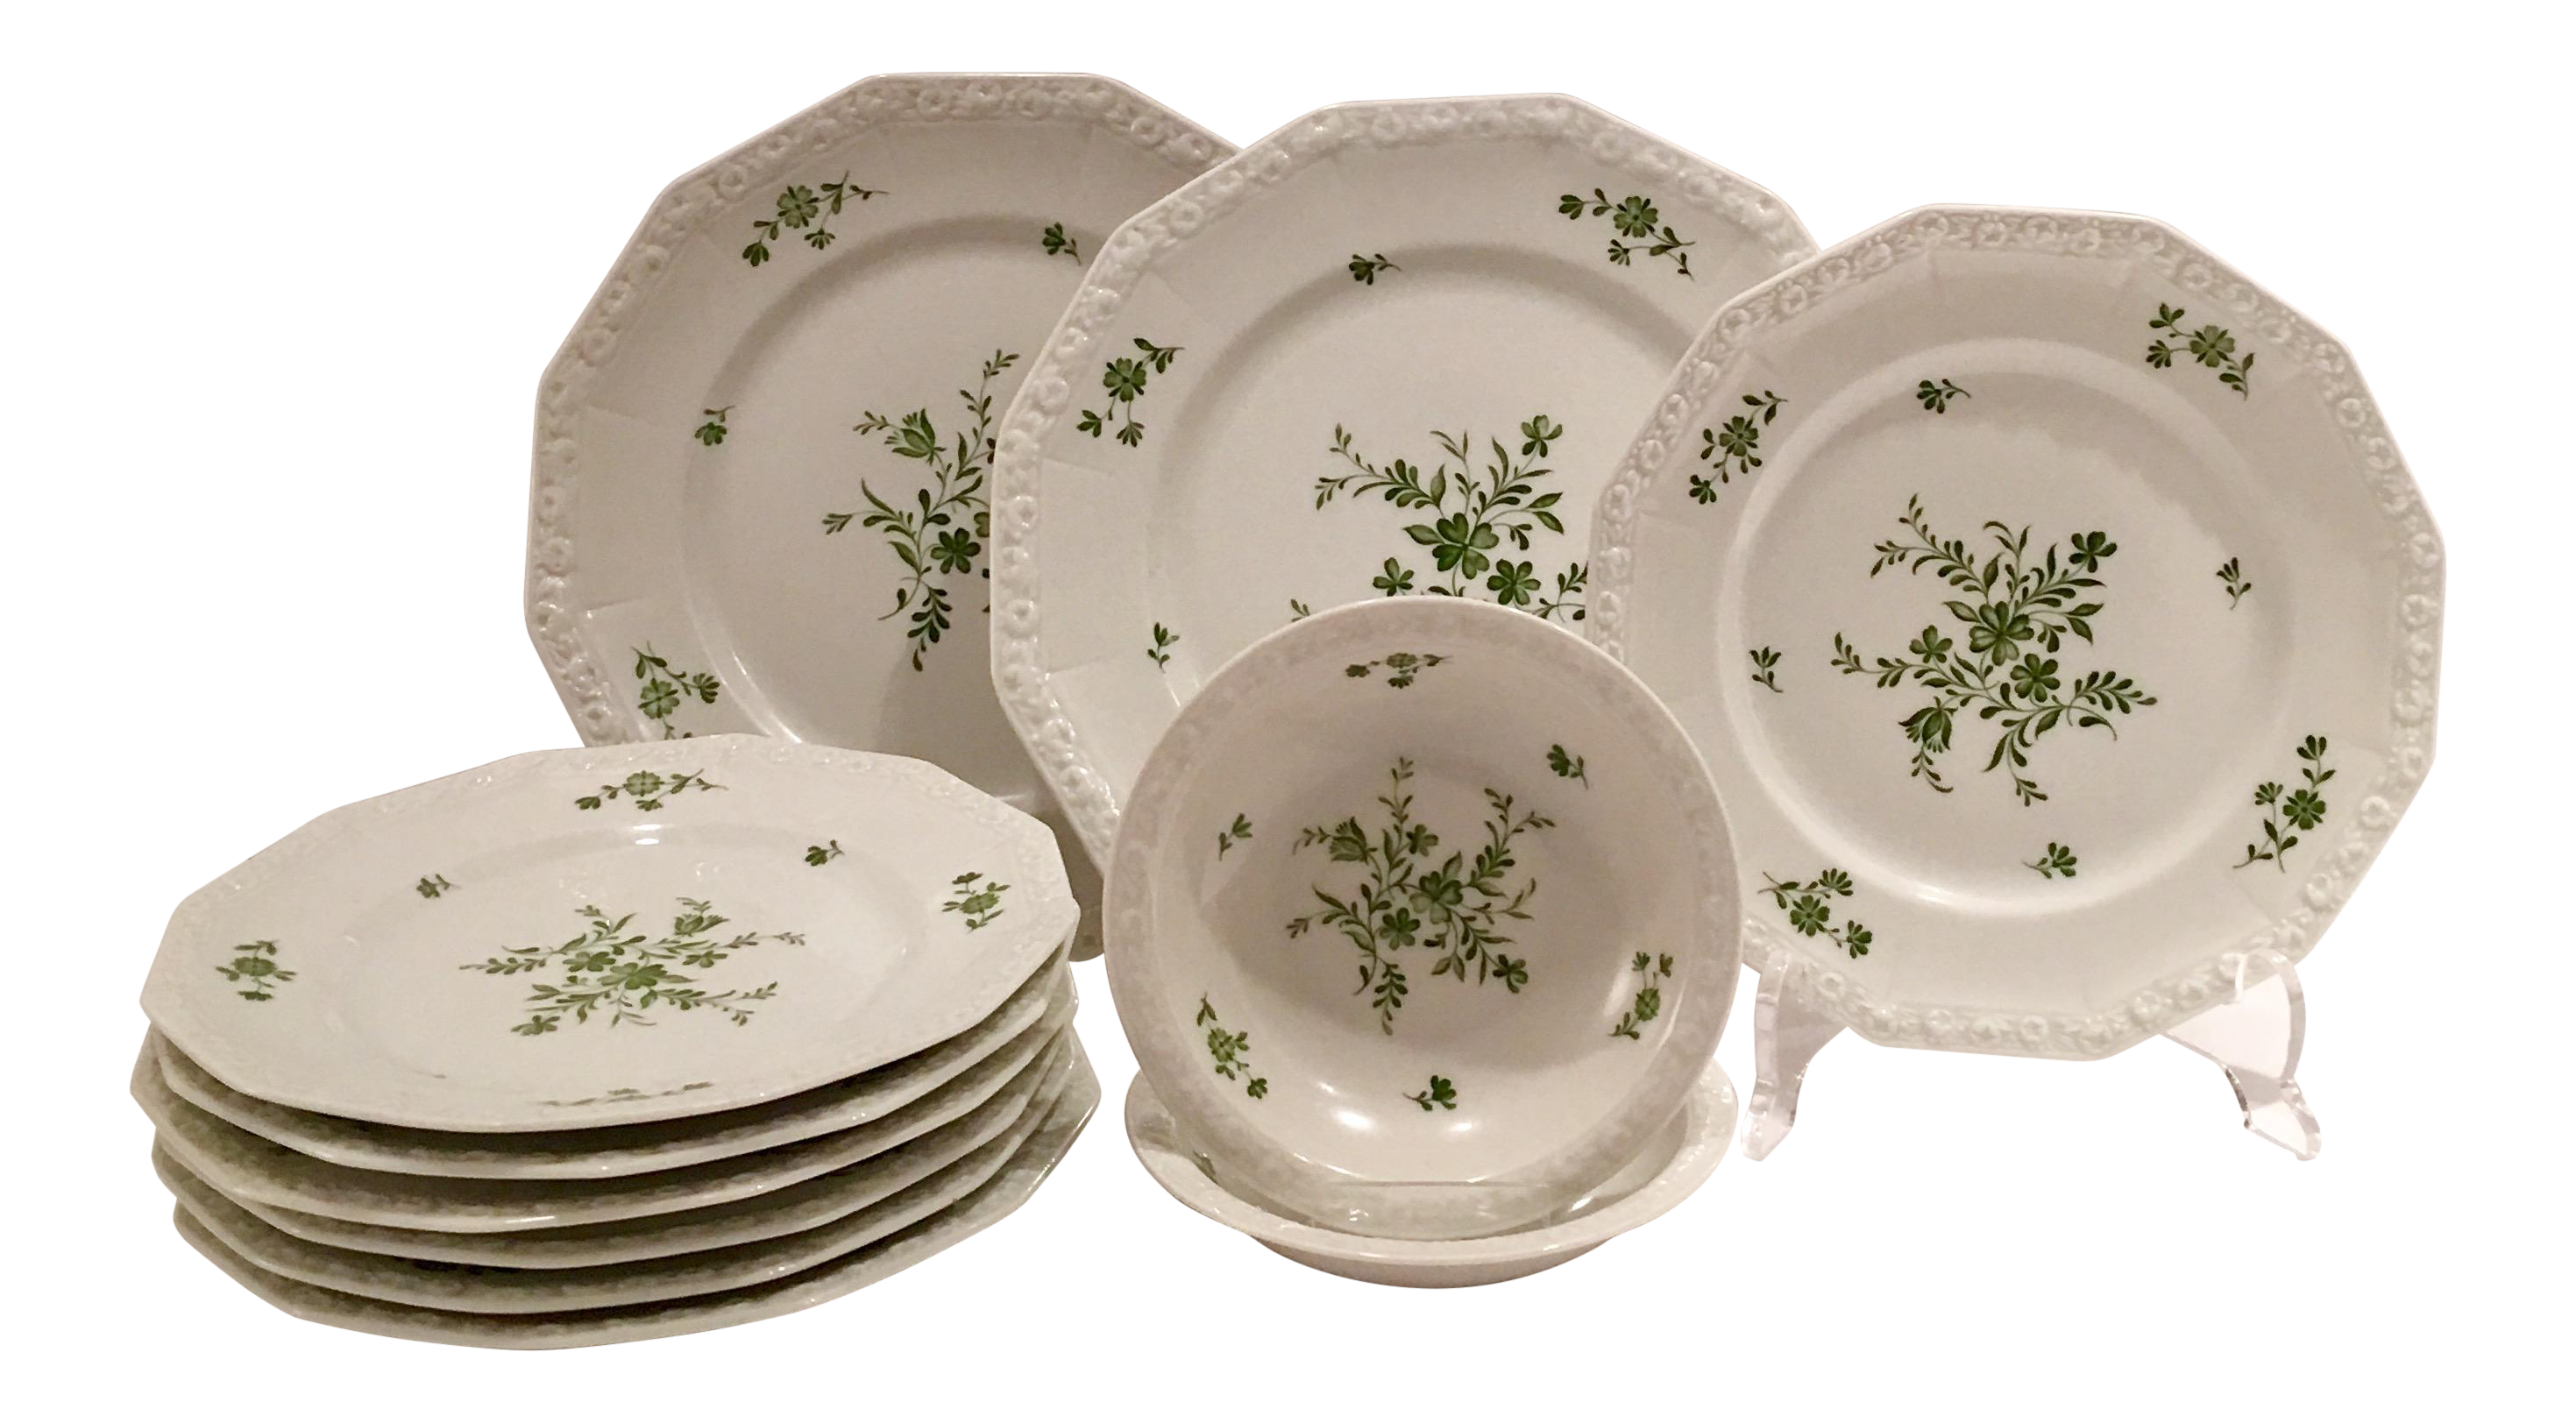 1940s Rosenthal Maria Green Patterned Dinnerware - Set of 11  sc 1 st  Chairish & 1940s Rosenthal Maria Green Patterned Dinnerware - Set of 11 | Chairish